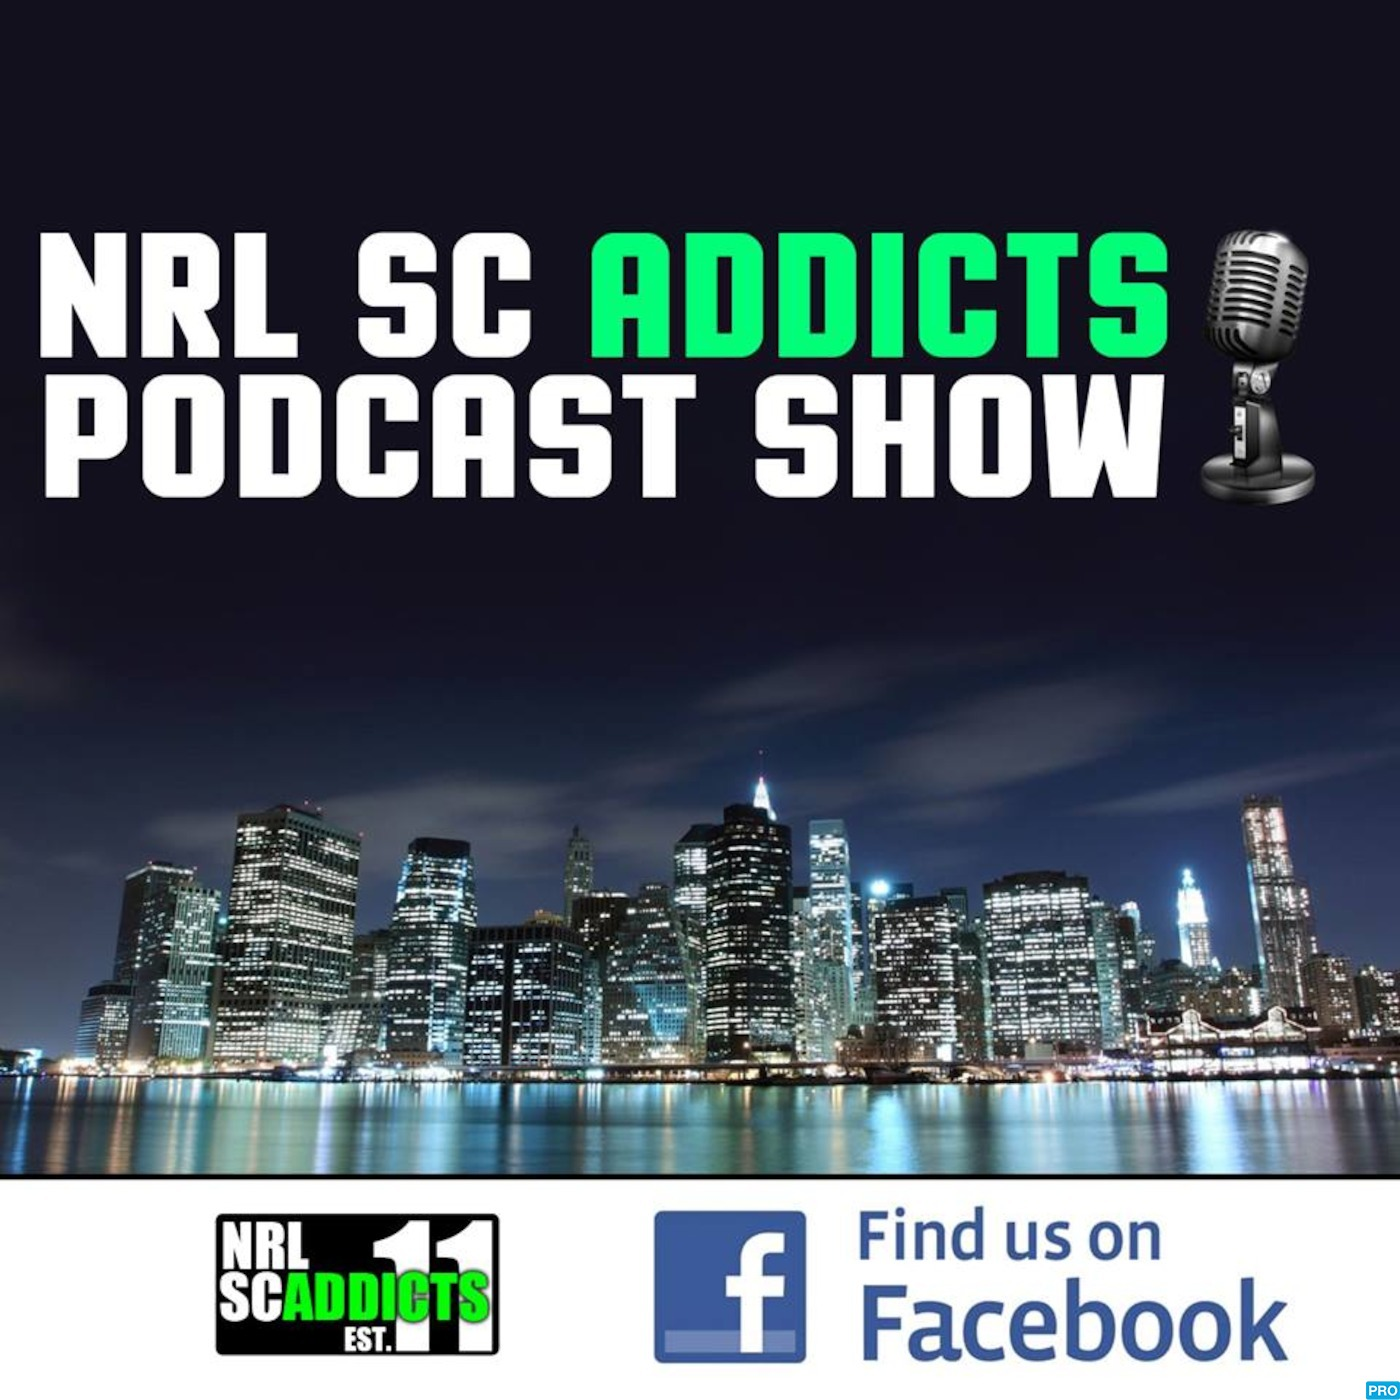 NRL Supercoach Addicts Podcast